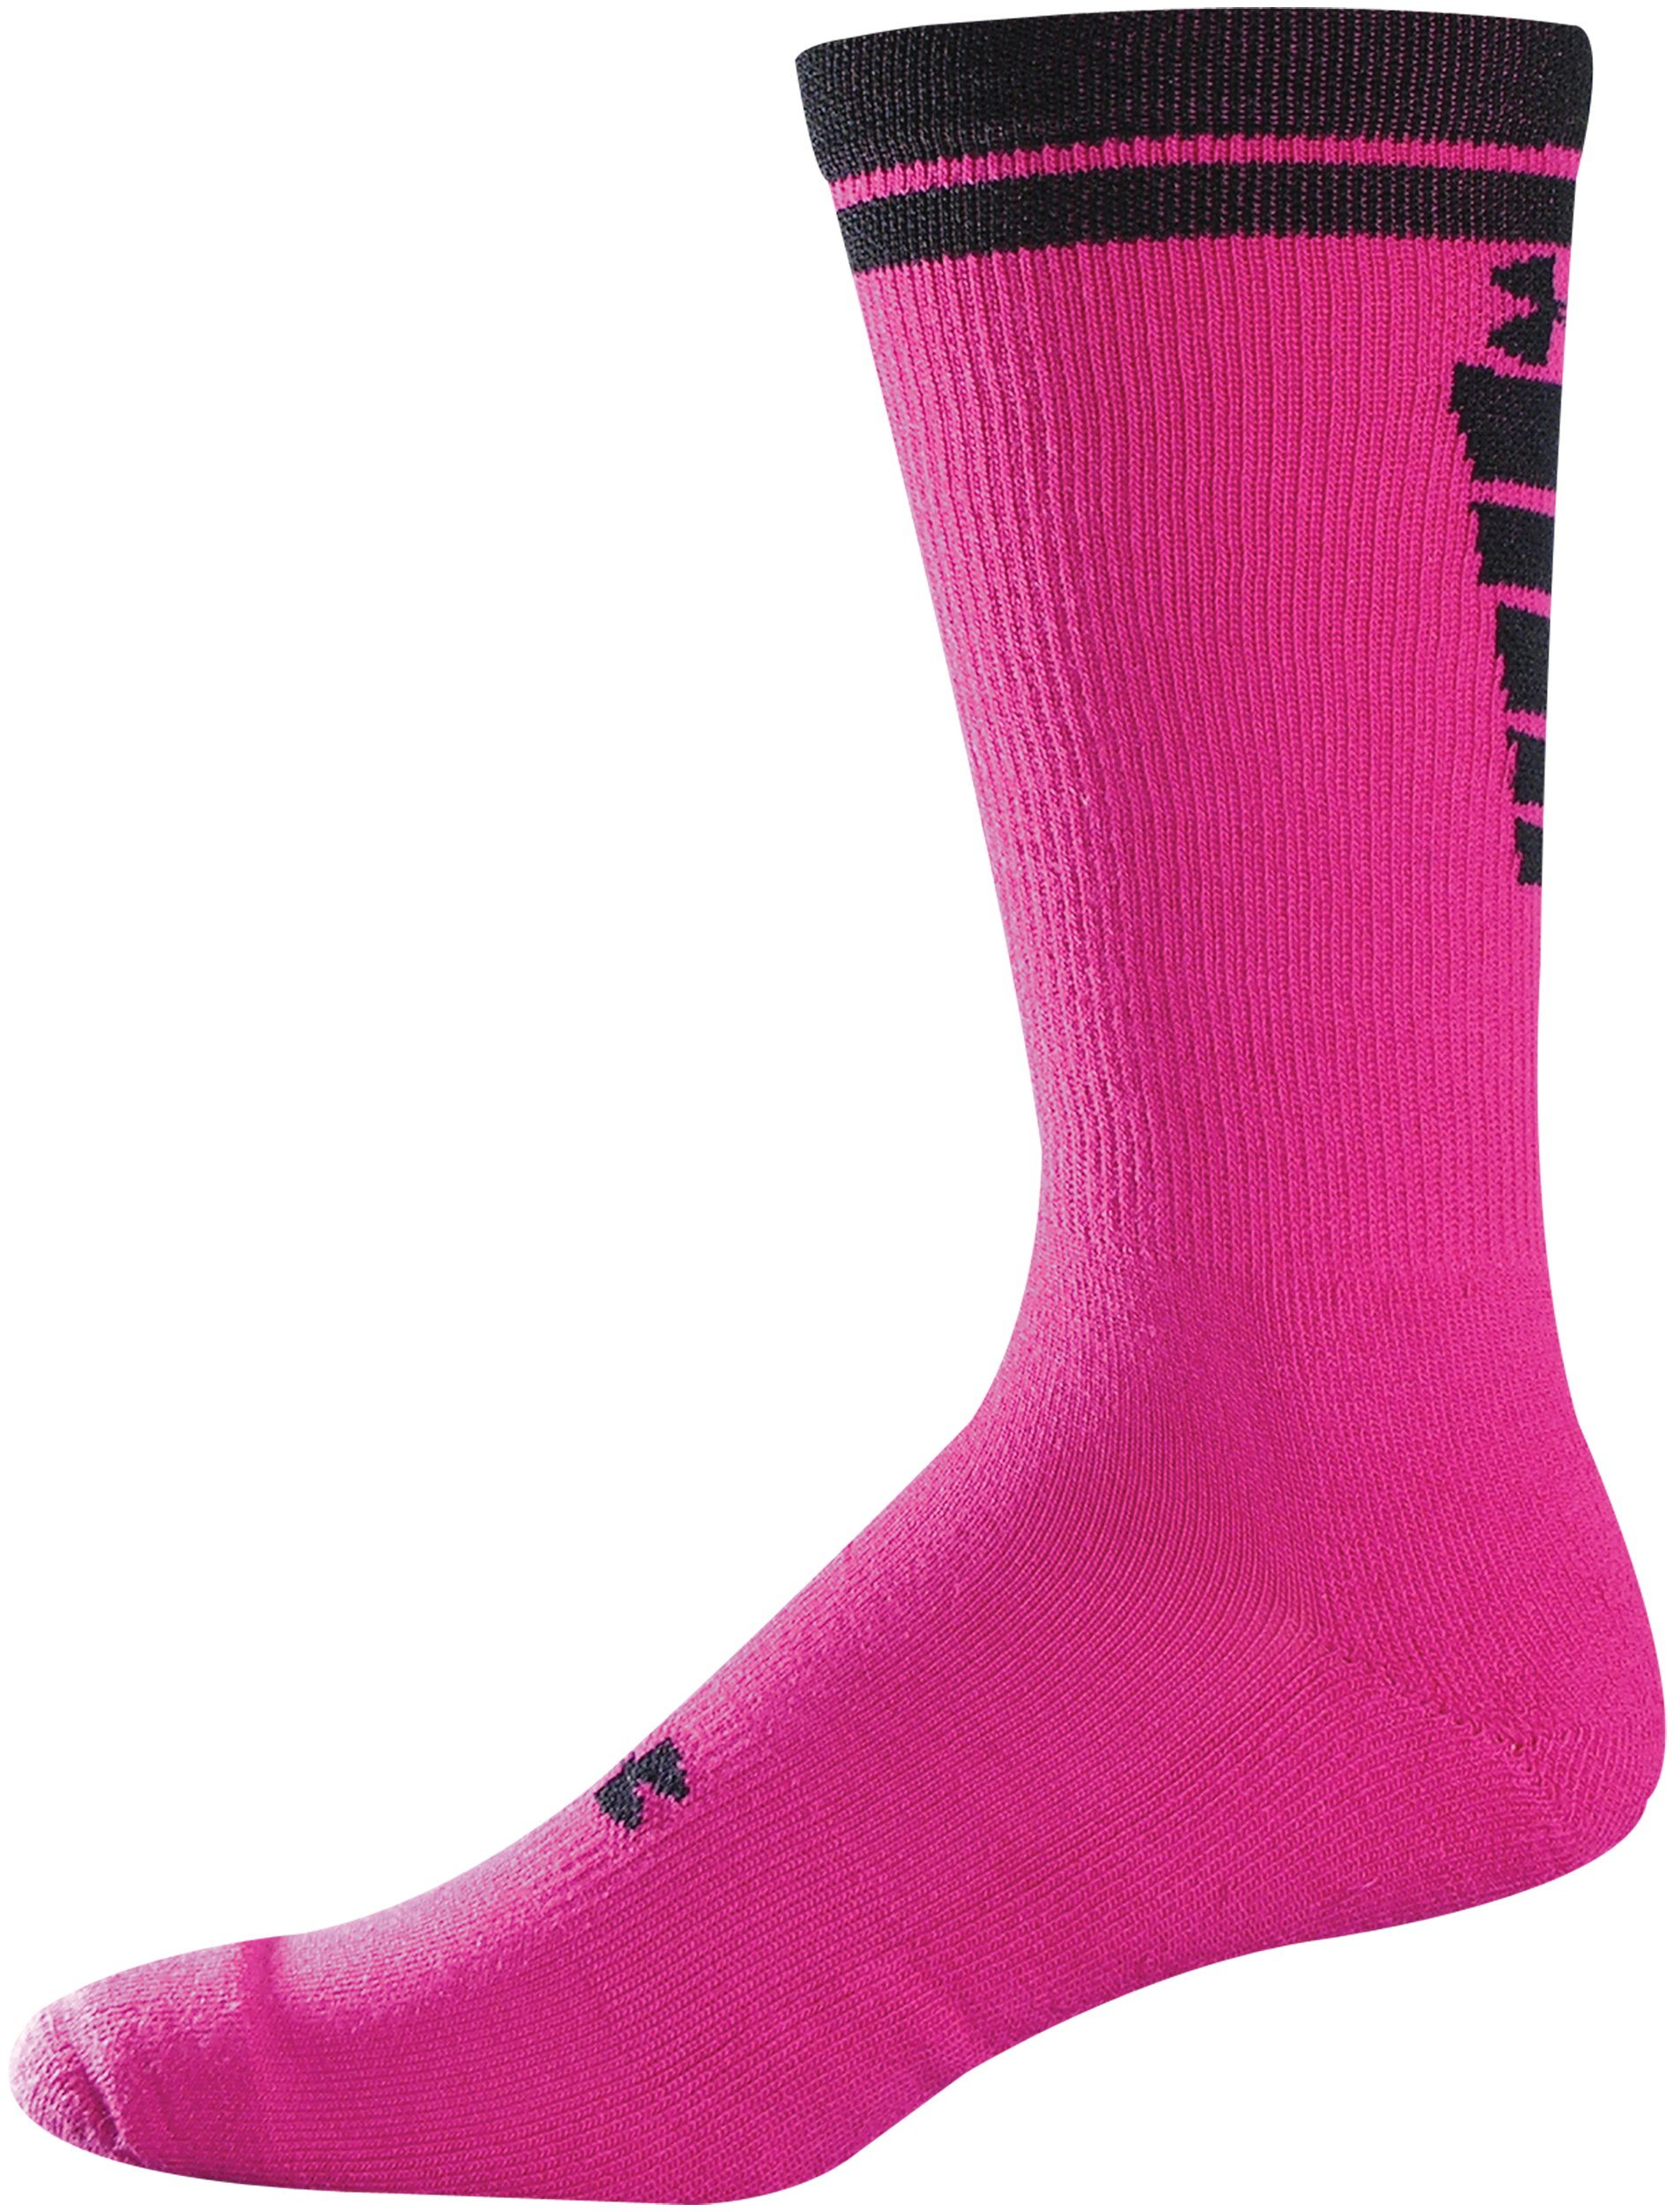 Men's UA Zagger Crew Socks, Tropic Pink, zoomed image